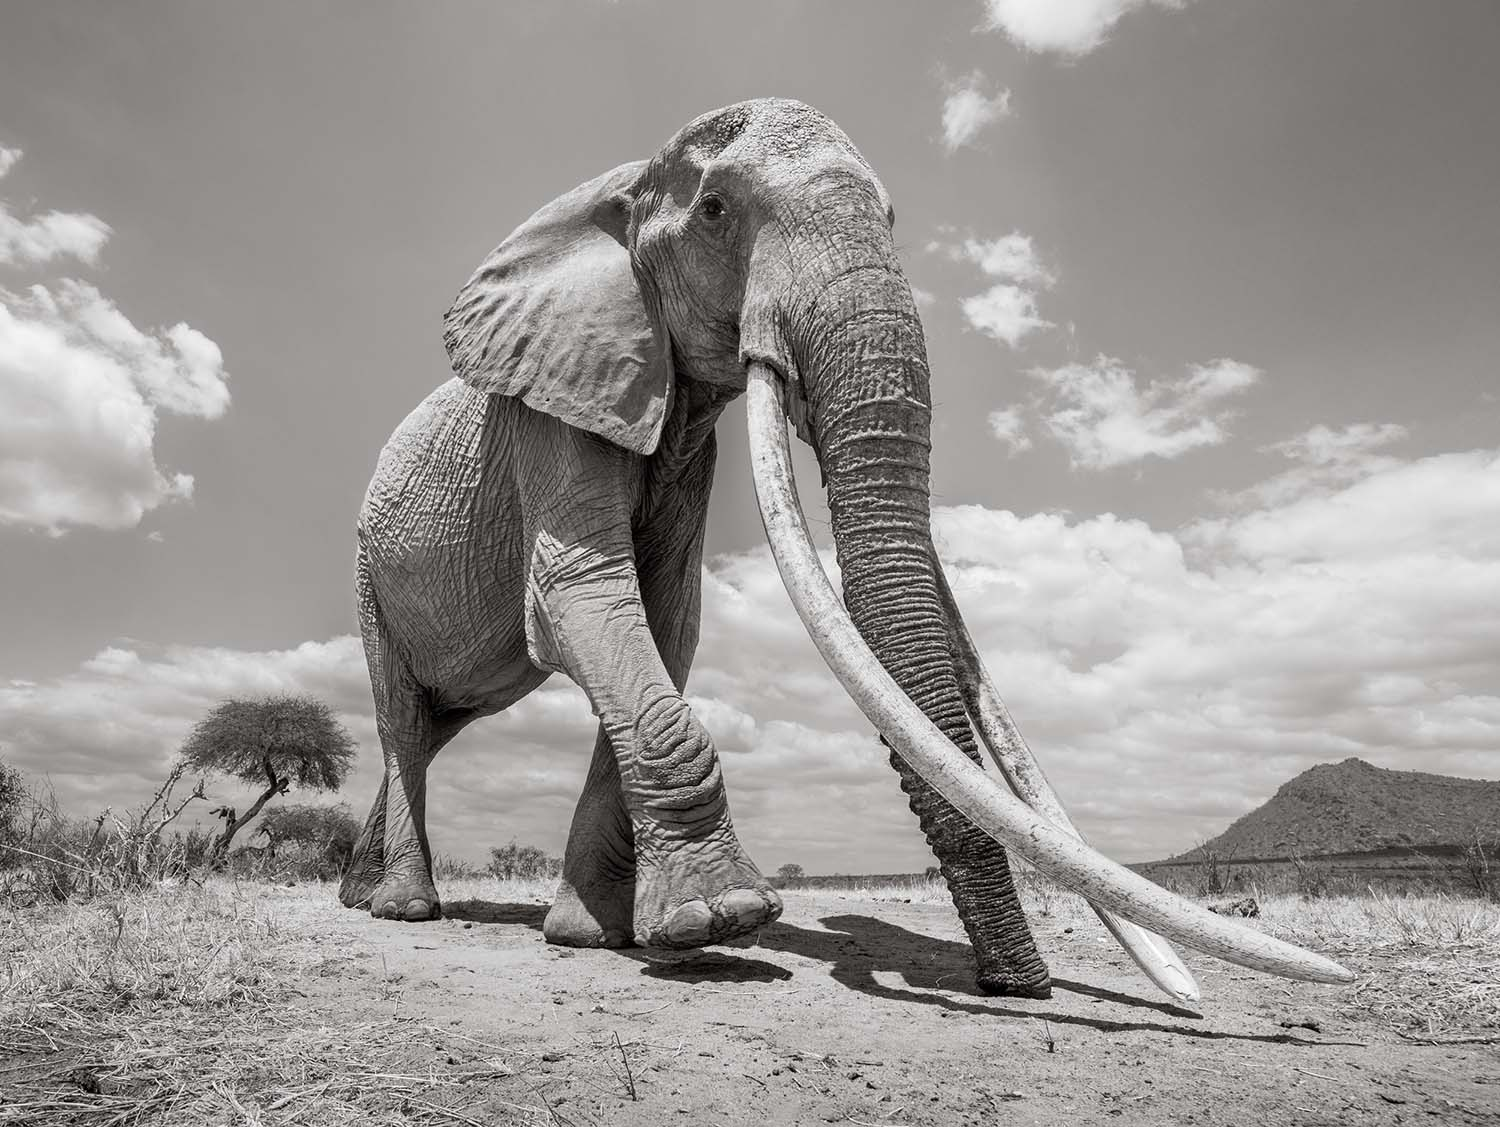 Will Burrard-Lucas, Land of Giants | World Photography ...